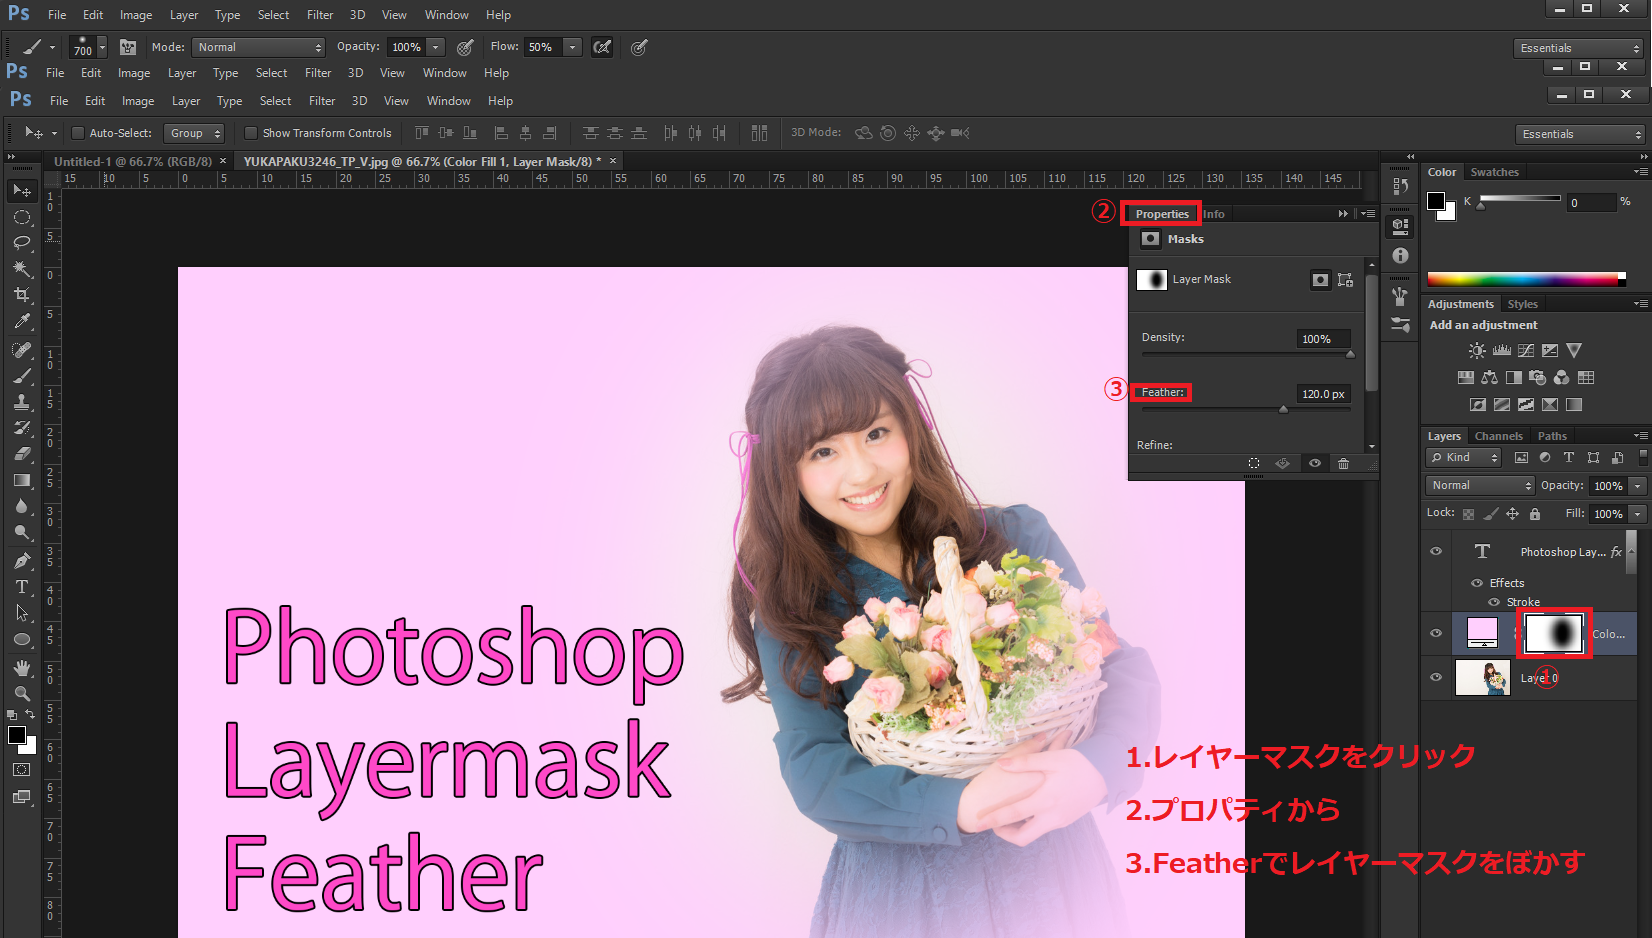 photoshop layermask feather